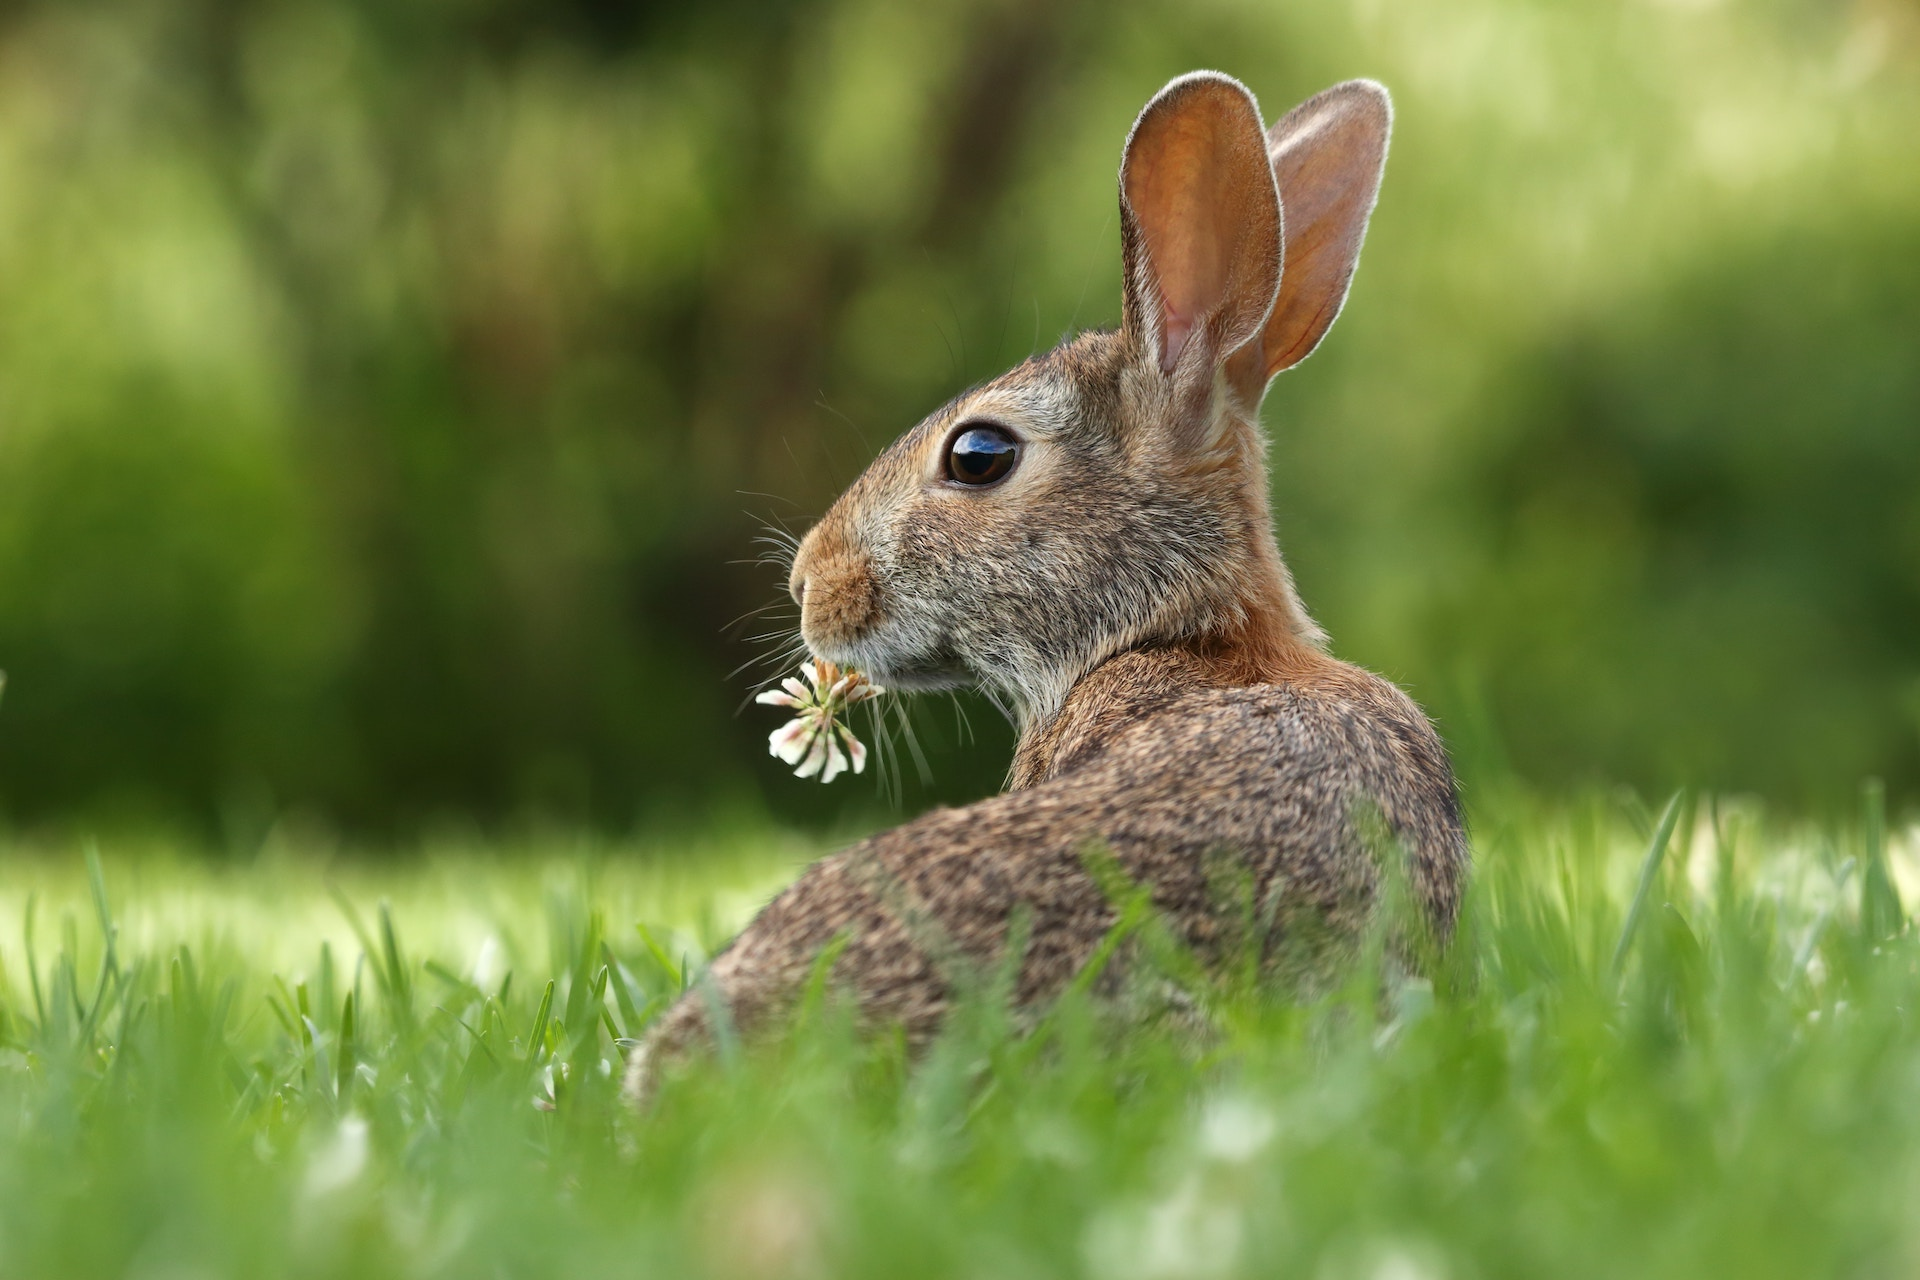 Rabbit eating a flower